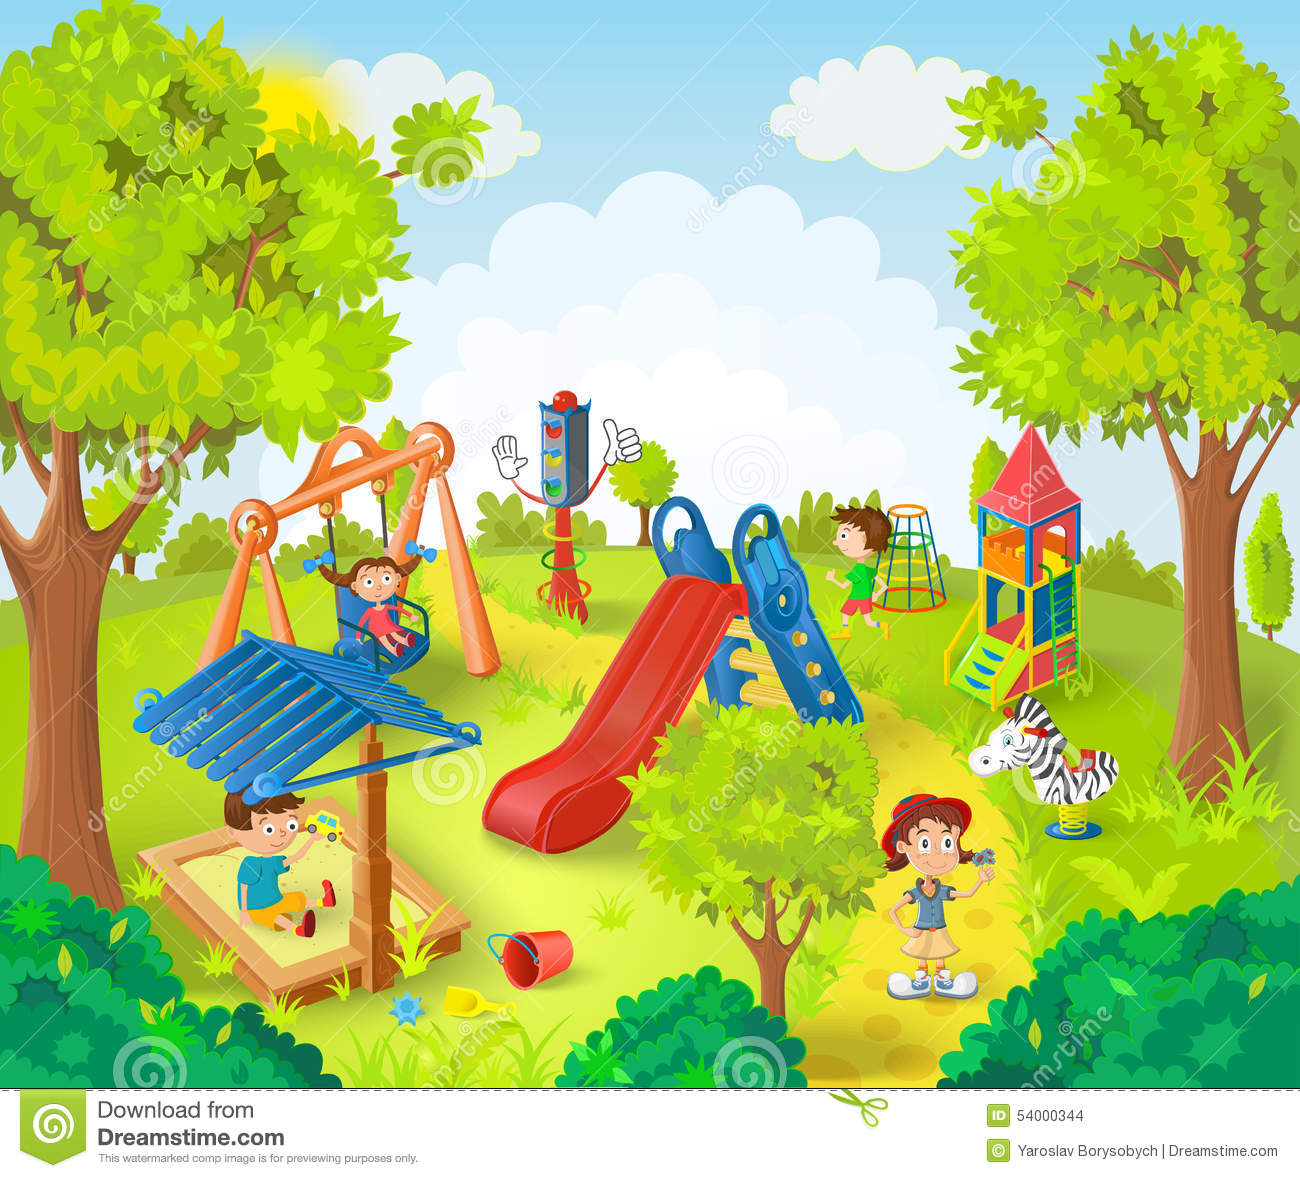 Children Playing In The Park Stock Illustration - Image: 54000344